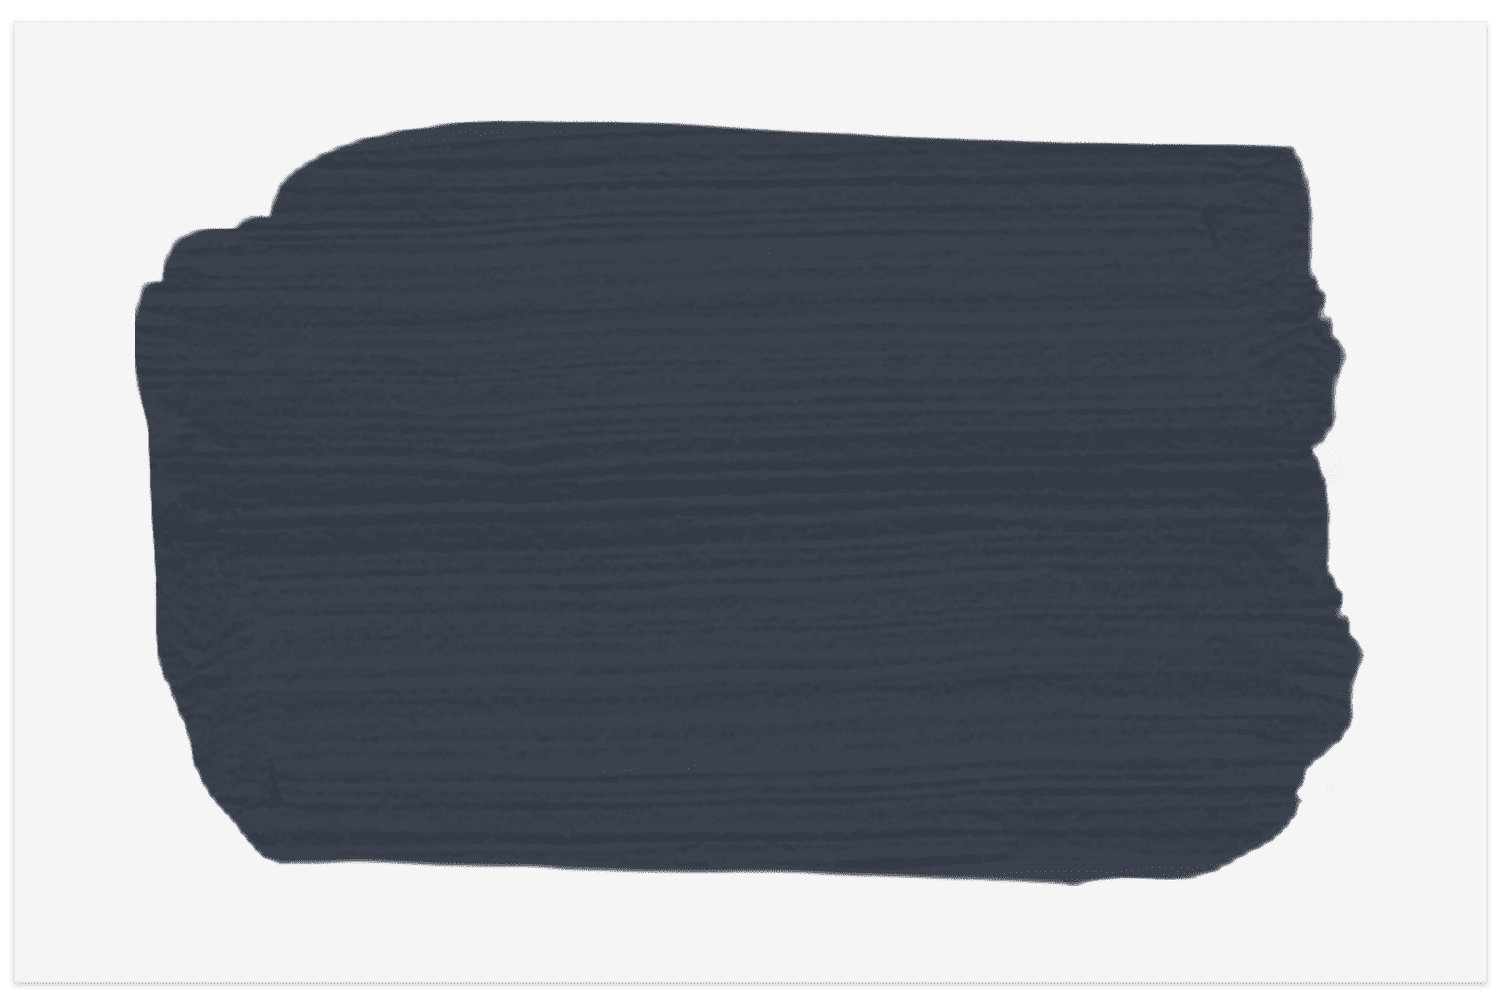 Sherwin-Williams Charcoal Blue swatch